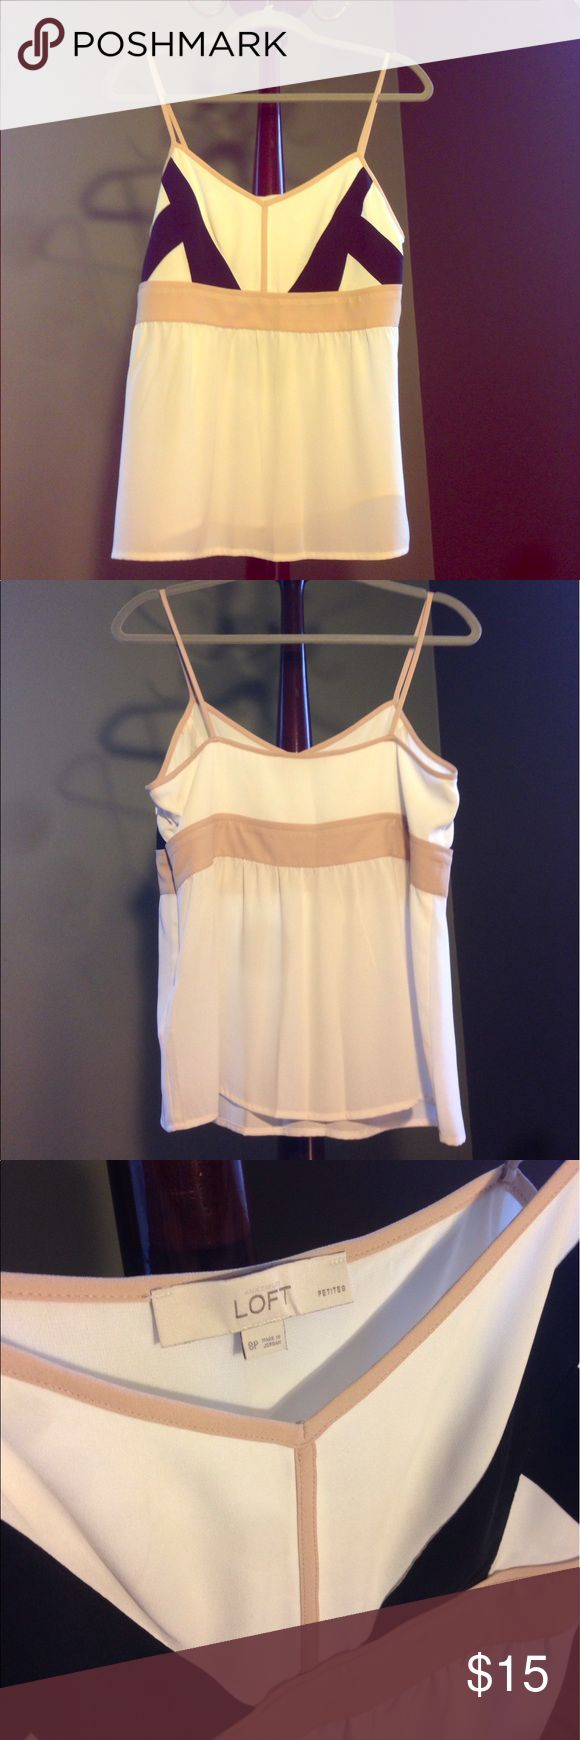 Loft Strappy Tank Top Lightweight off-white strappy tank top with black and beige accents. Machine washable crepe-like material with a side zip and hook and eye closure at the top of the zipper. In like new condition, worn only once. LOFT Tops Tank Tops